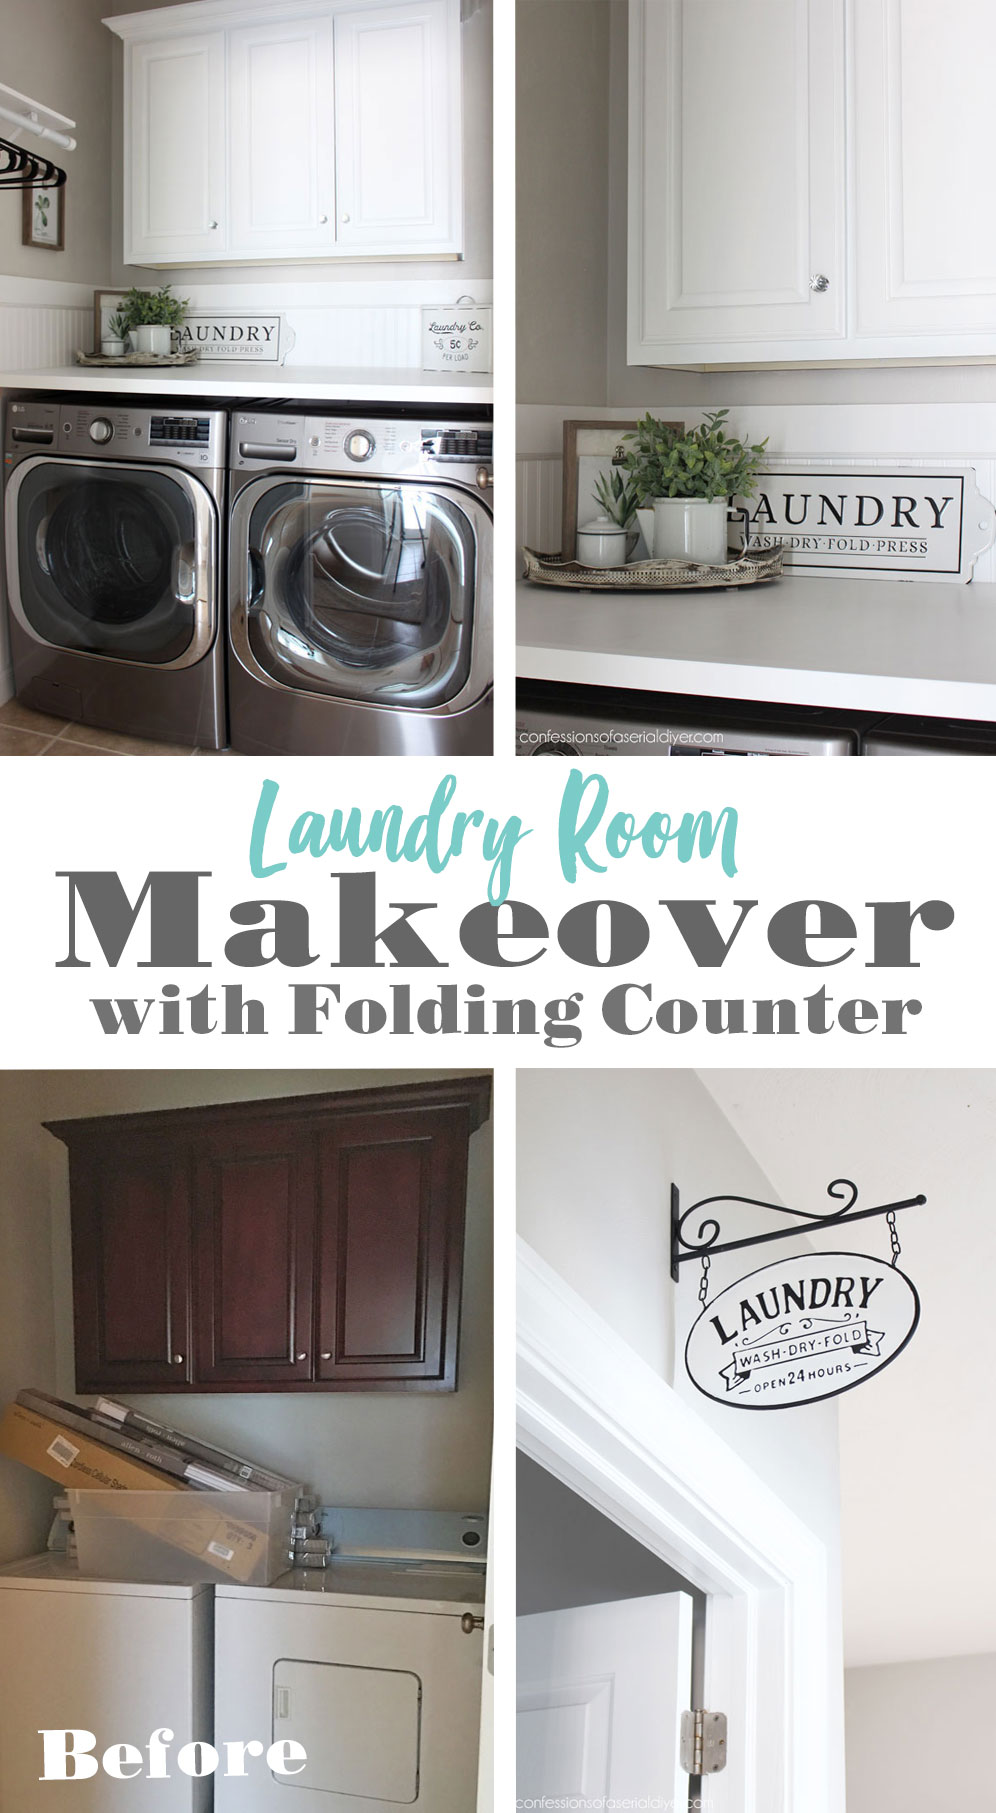 Laundry Room Makeover with Folding Counter